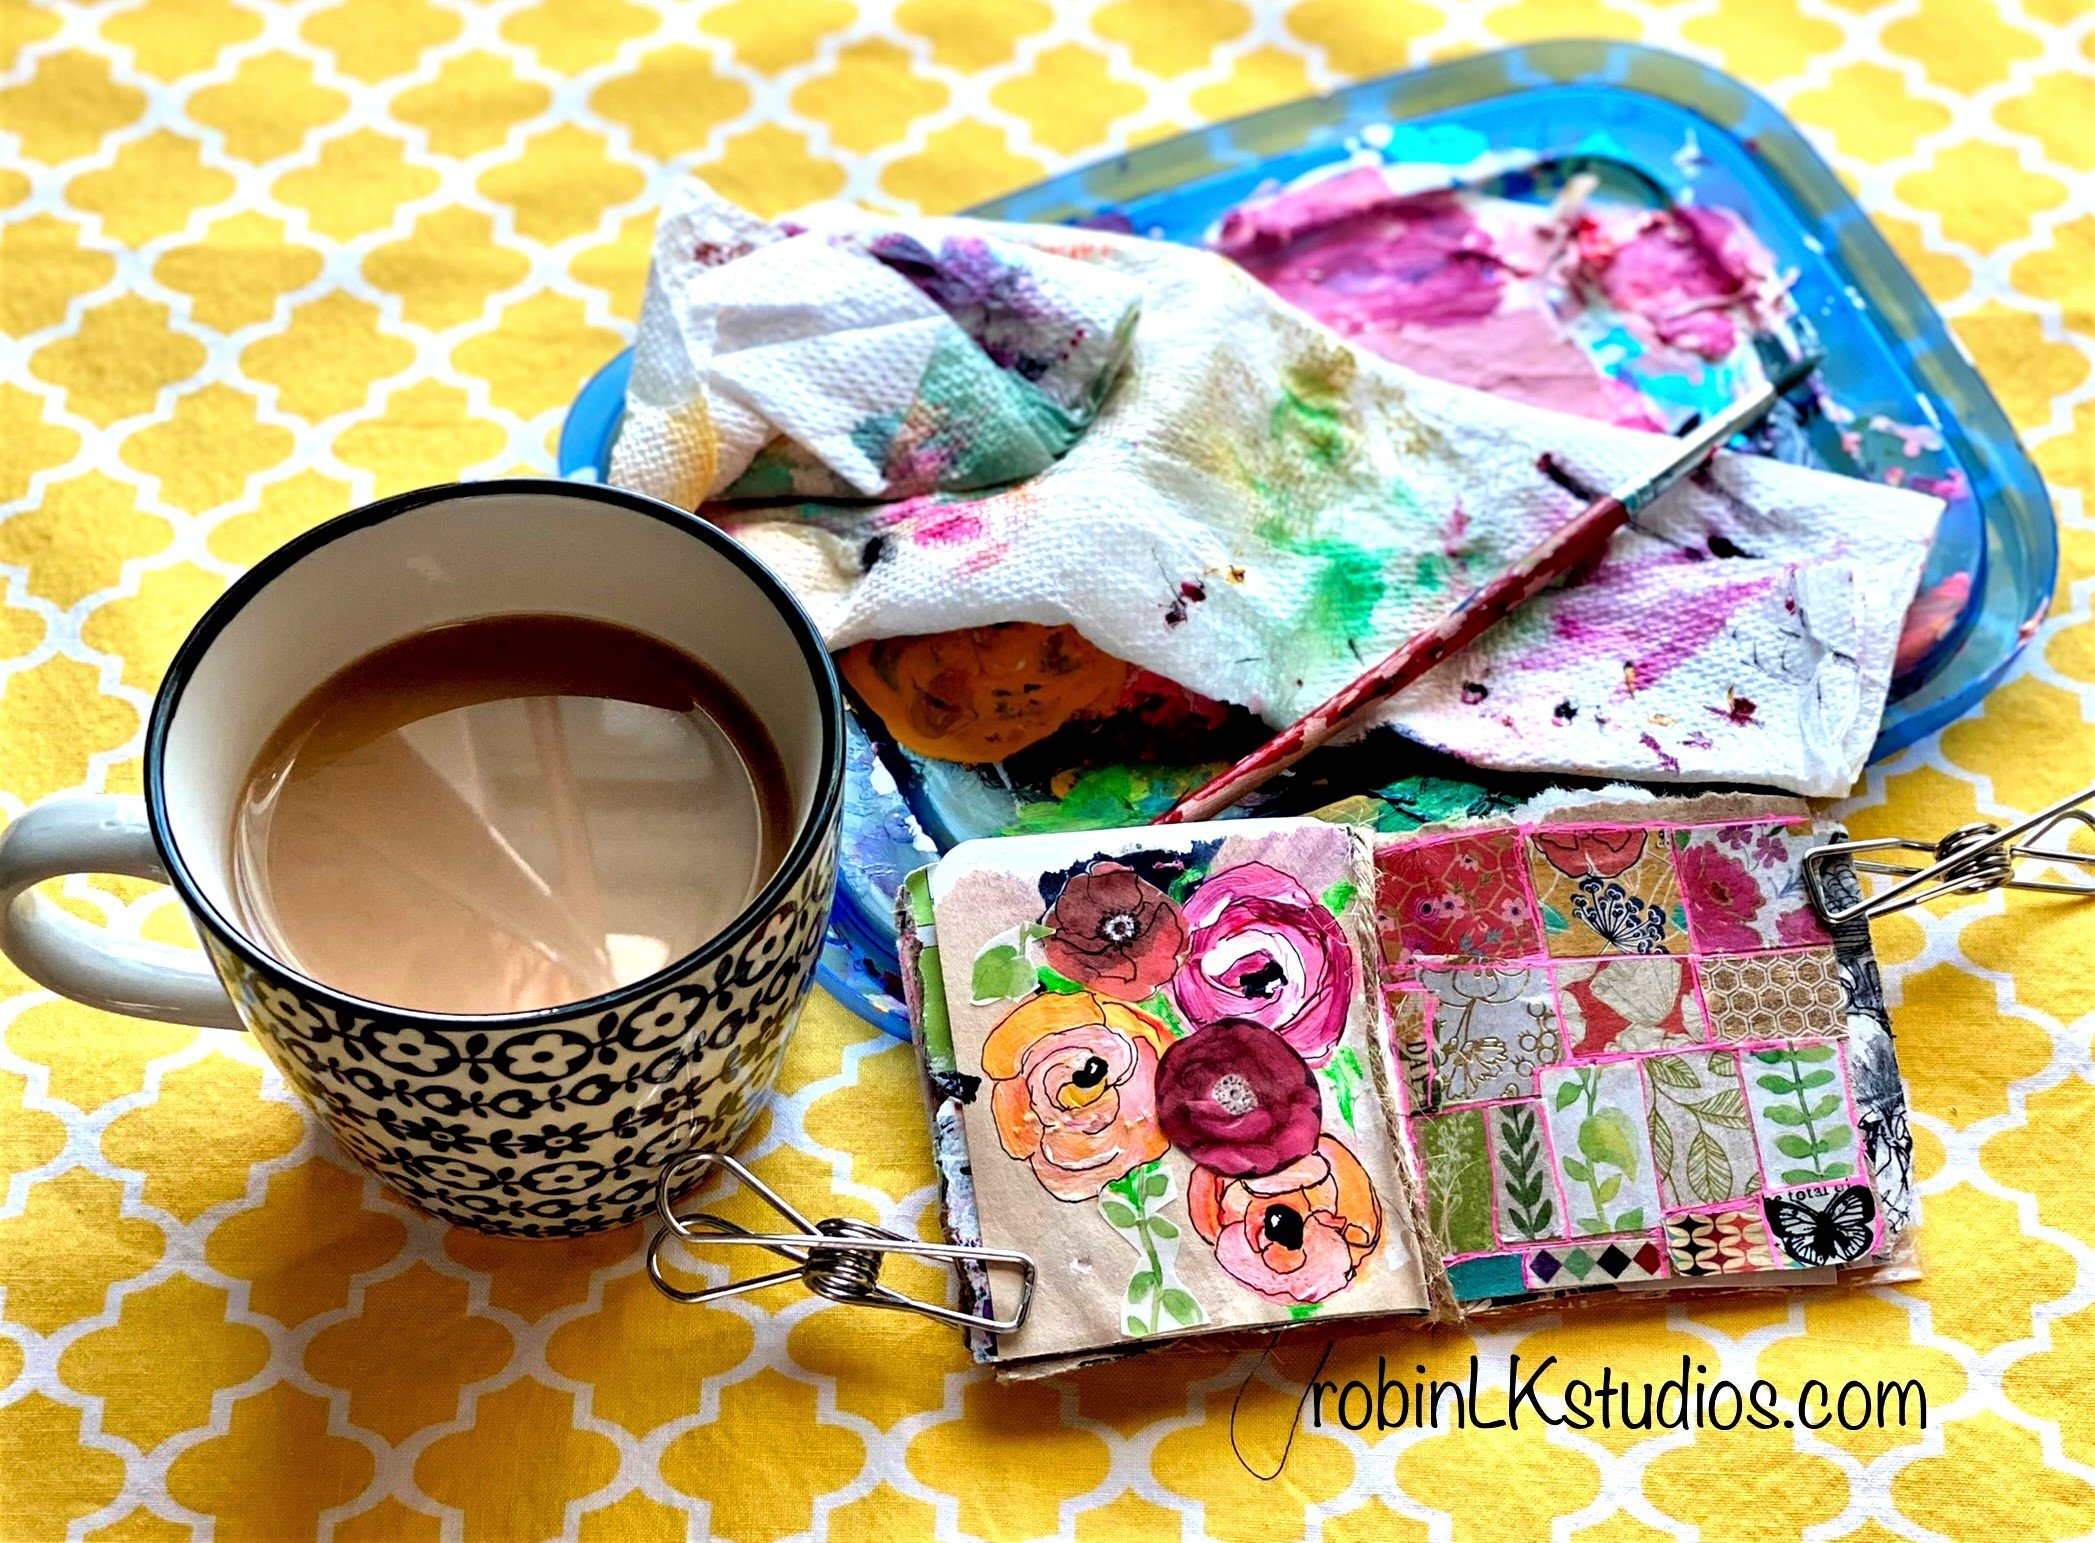 mini journal and coffee cup on a yellow tablecloth